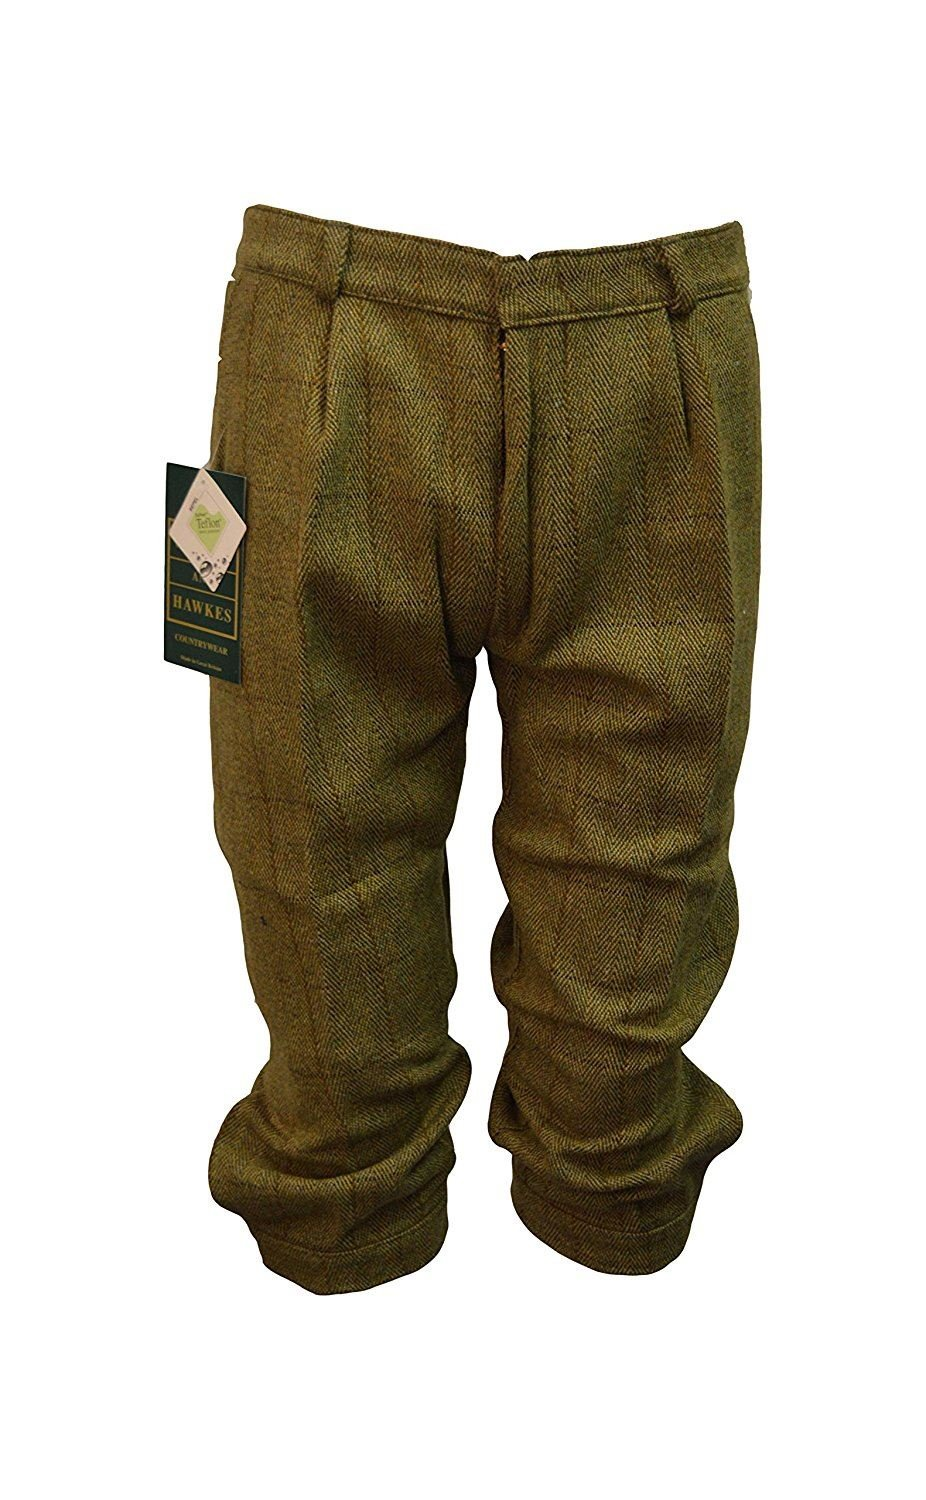 811bffd1f82aa Walker and Hawkes Men s Derby Tweed Shooting Plus Fours Breeks Trousers 36  Light Sage